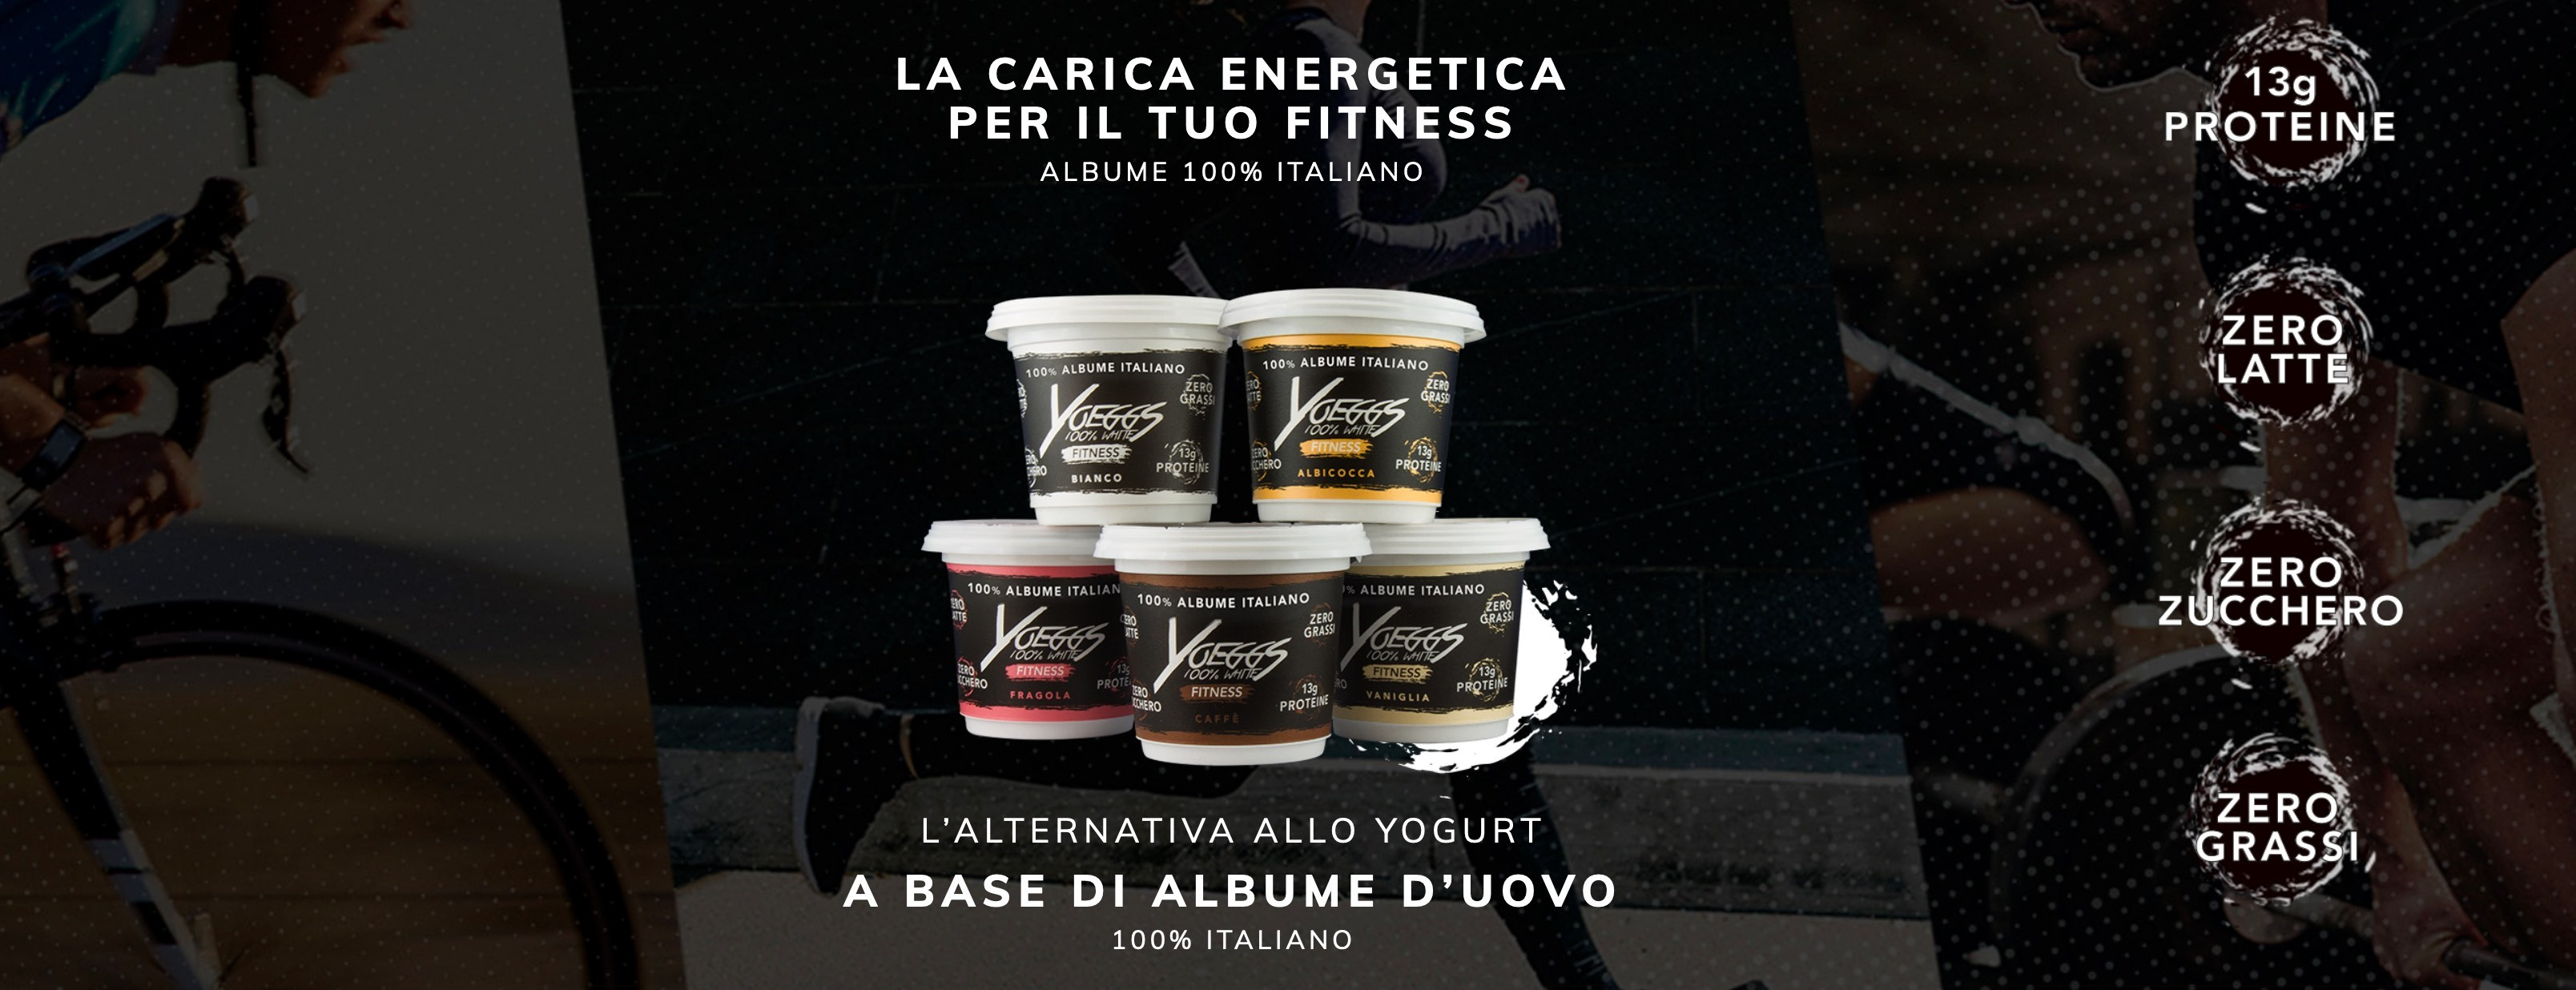 l'alternativa allo yogurt a base di albume d'uovo, yoeggs